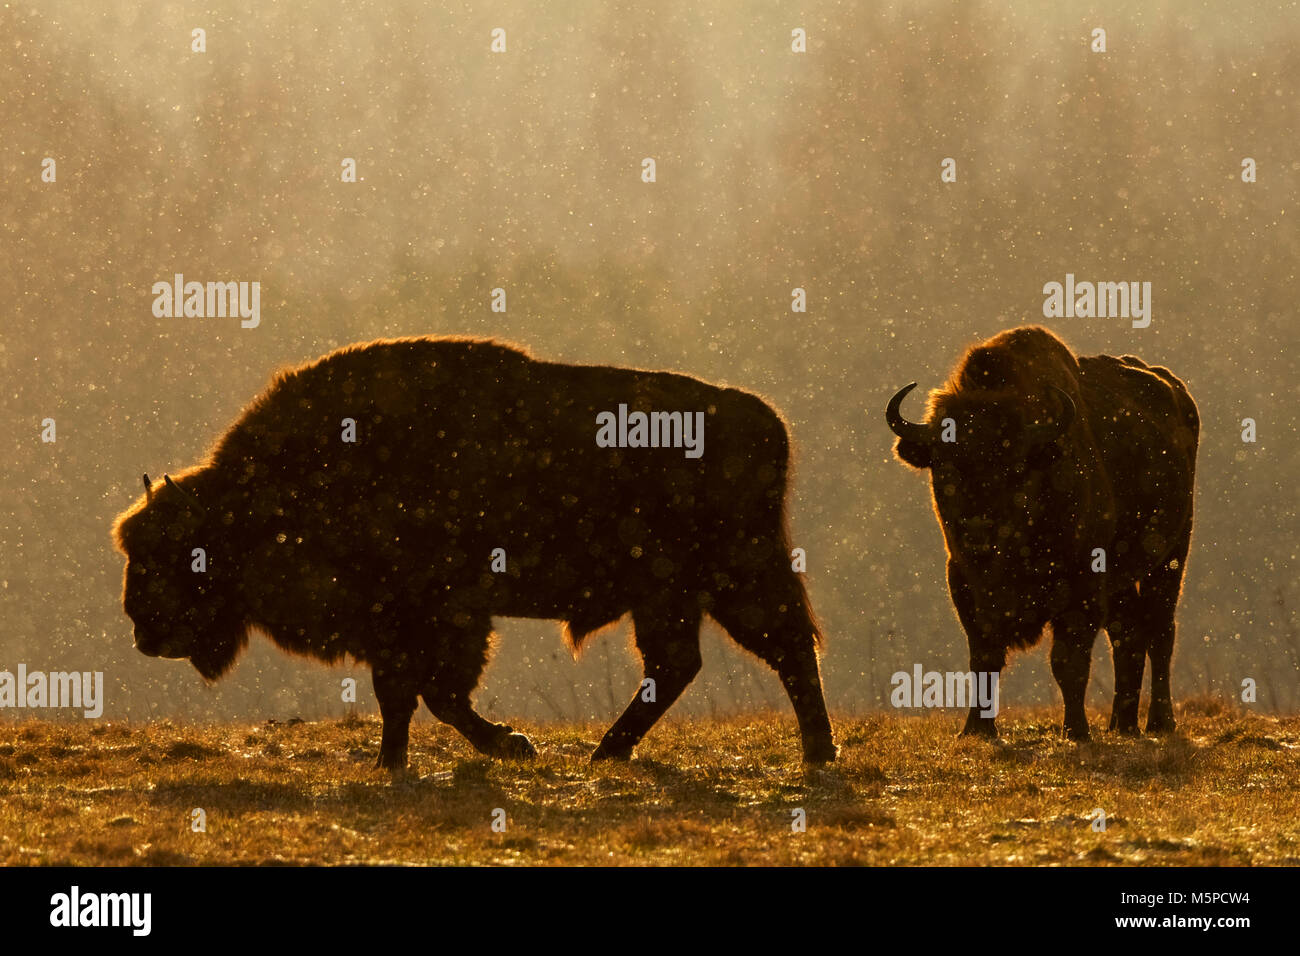 Two male bison in silhouette, photographed against the sunrise light, during a snowstorm. Stock Photo